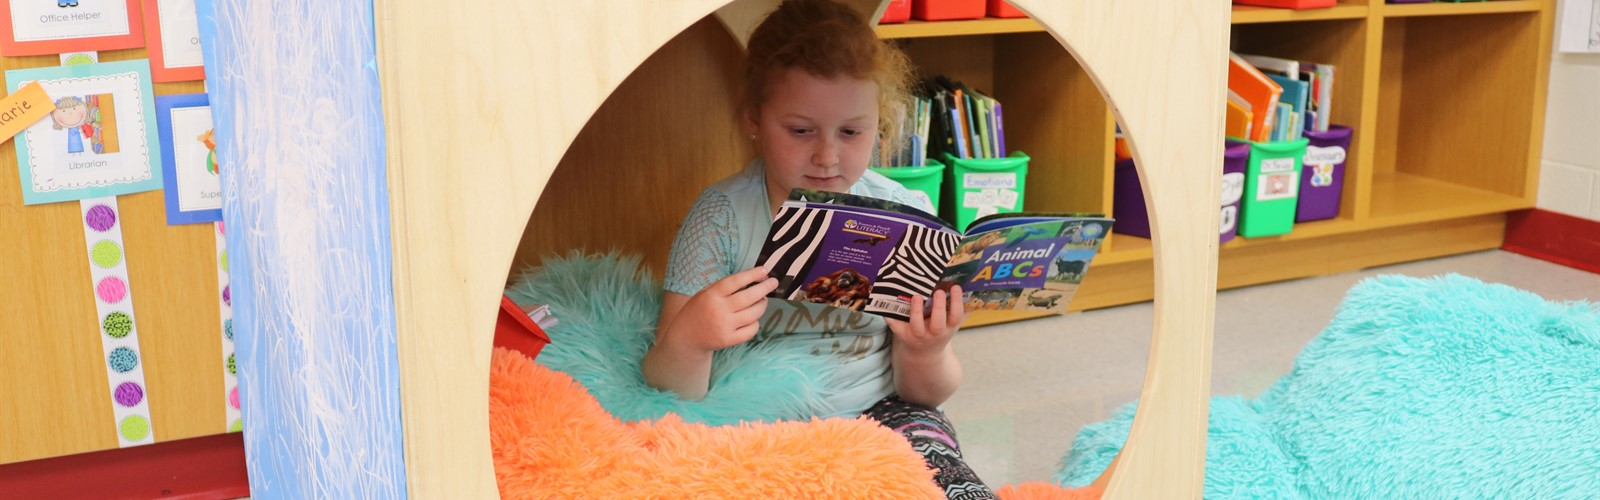 Student reading in a comfy reading nook